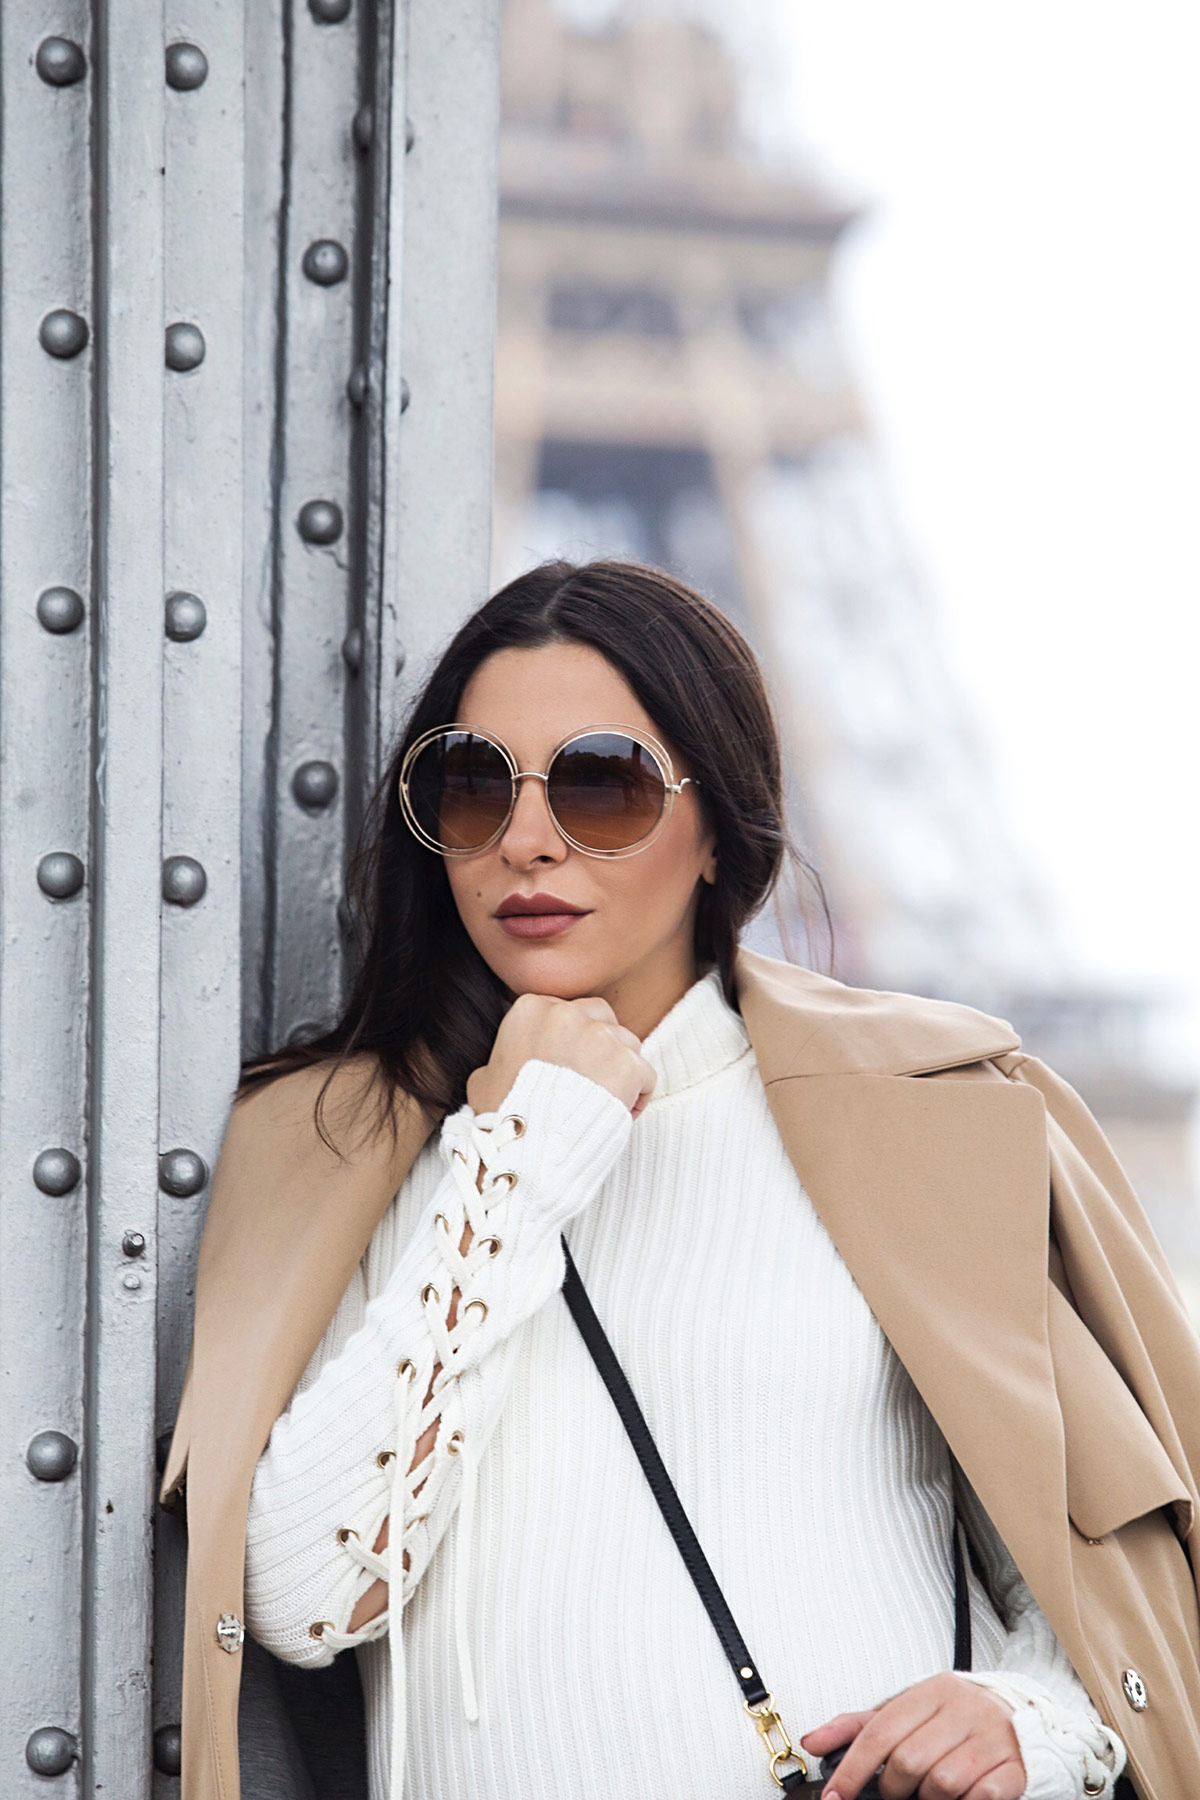 Maje ecru turtleneck dress for fall worn with camel trench coat, Chloé Carlina sunglasses and Louis Vuitton palm springs backpack by Stella Asteria - Fashion & Lifestyle Blogger in Paris - Paris Street Style & Pregnancy Style inspiration